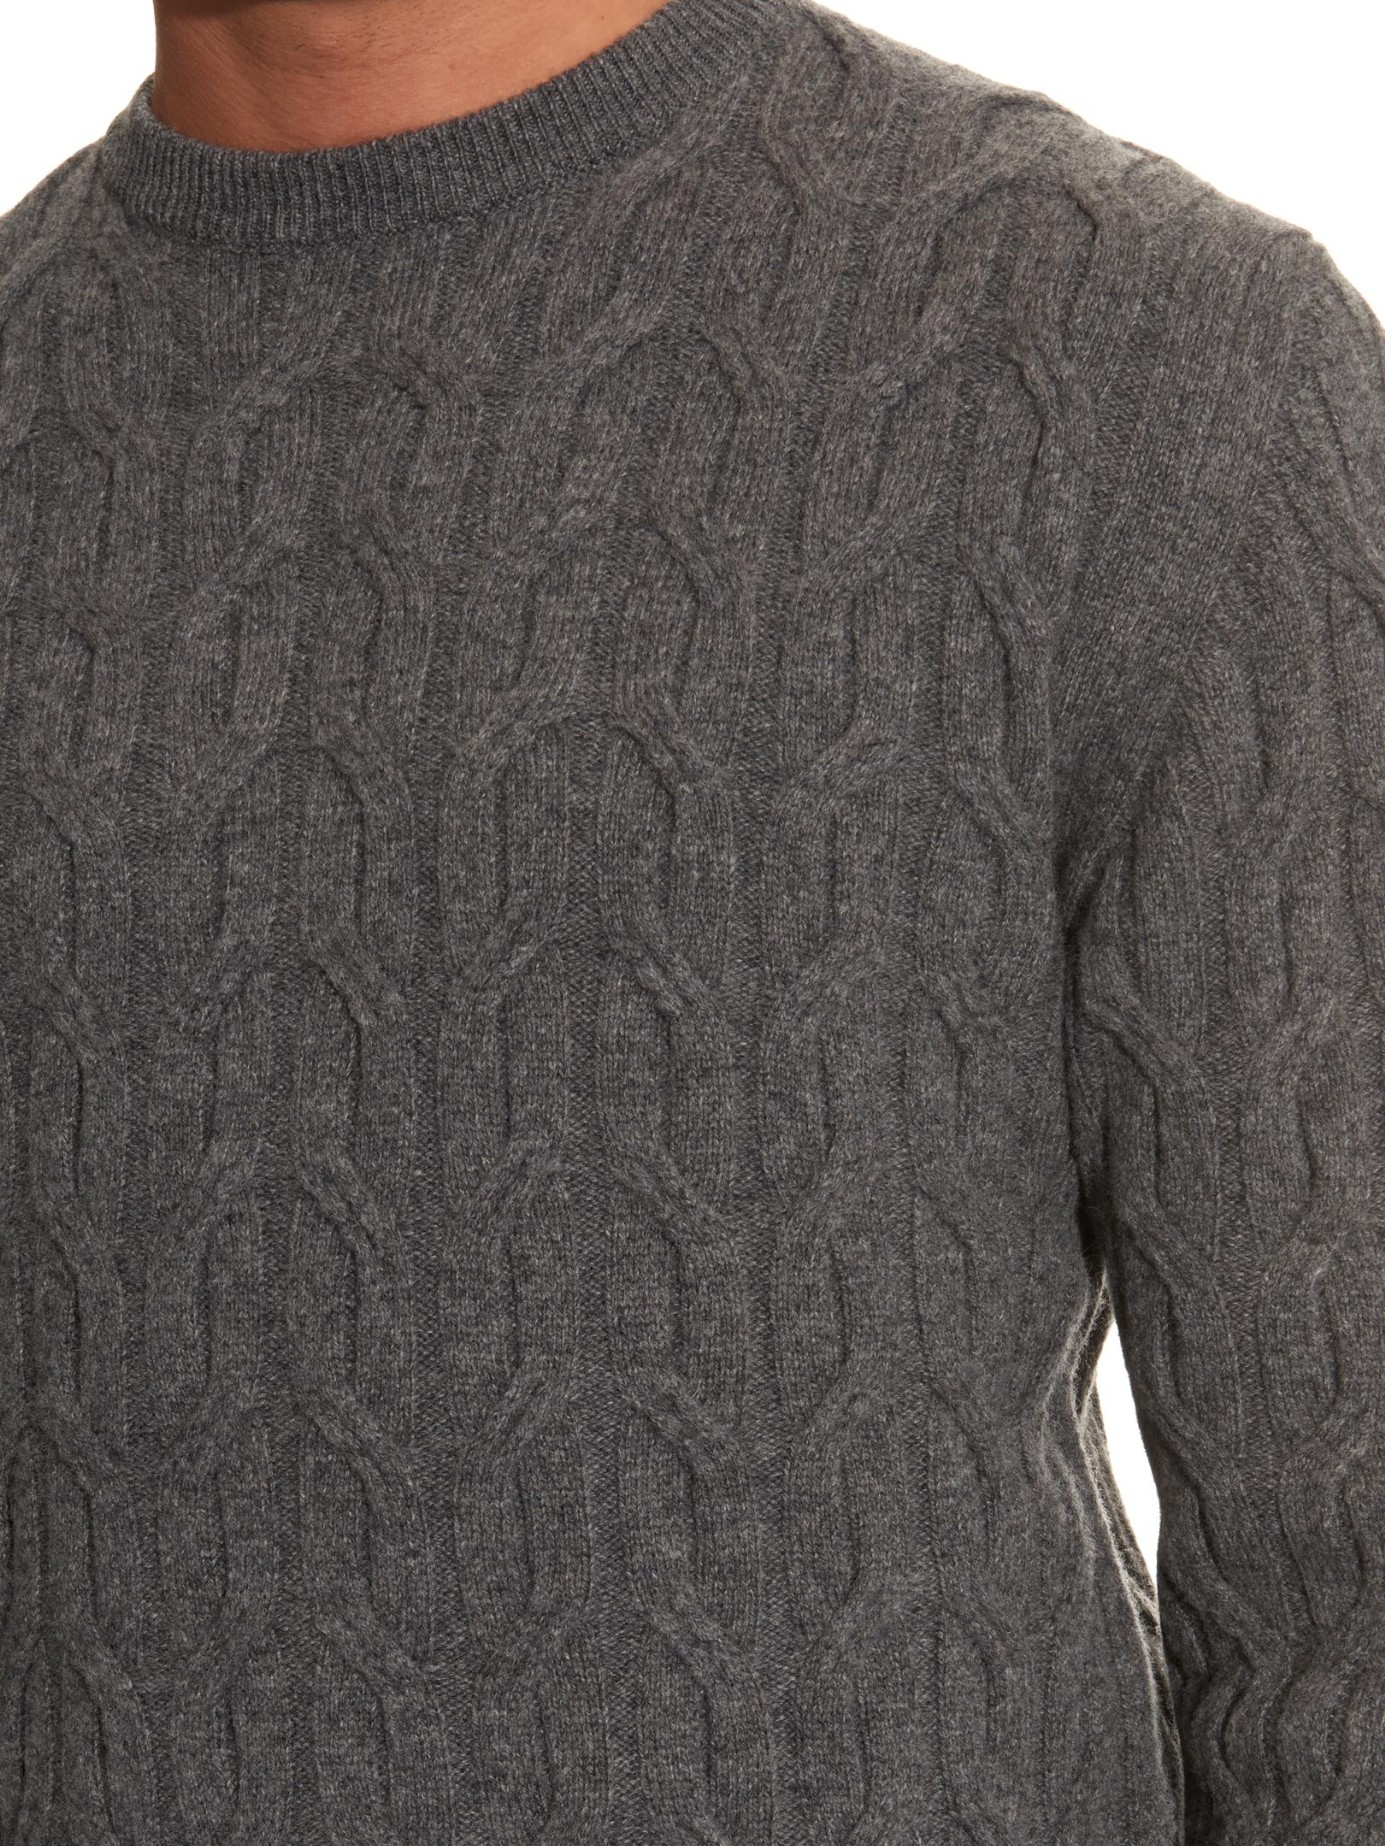 4647c736e4 Lyst - Lanvin Cable-knit Wool Sweater in Gray for Men